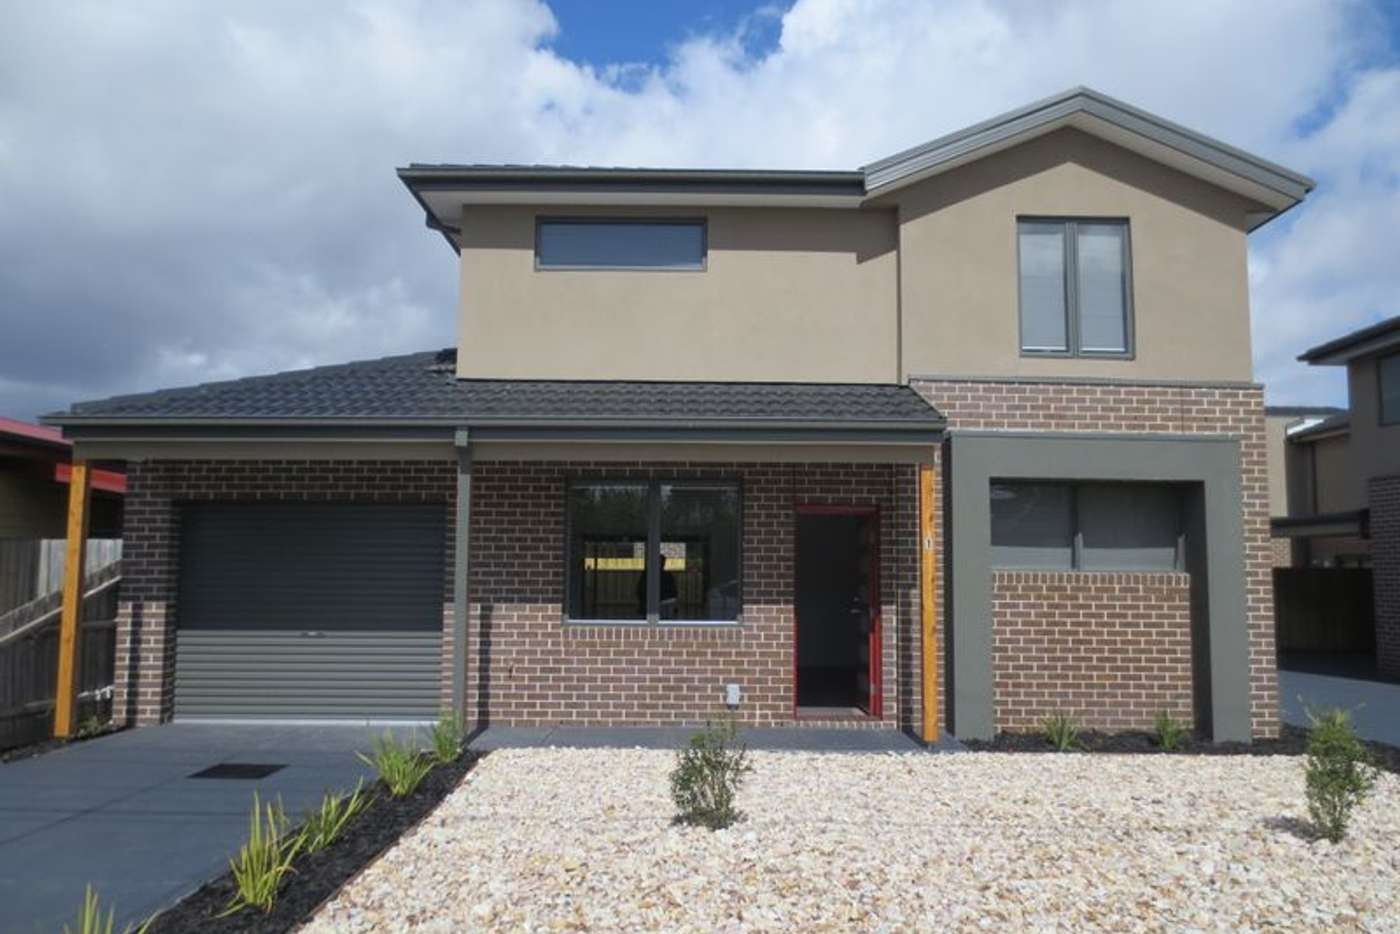 Main view of Homely townhouse listing, 1/85 View Street, Glenroy VIC 3046